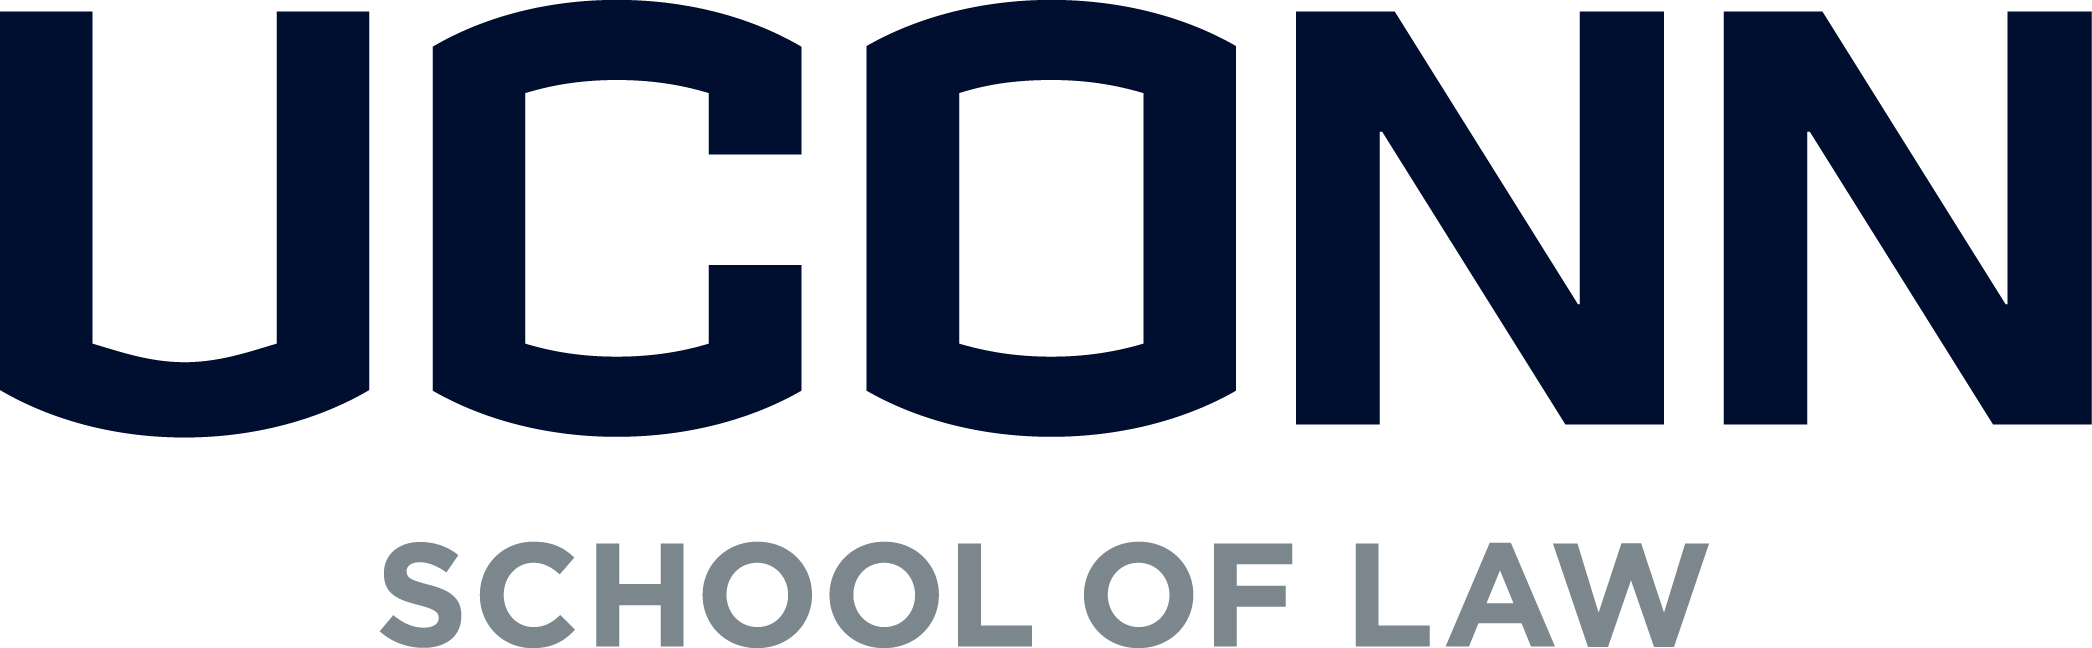 Classic school of law wordmark stacked blue gray